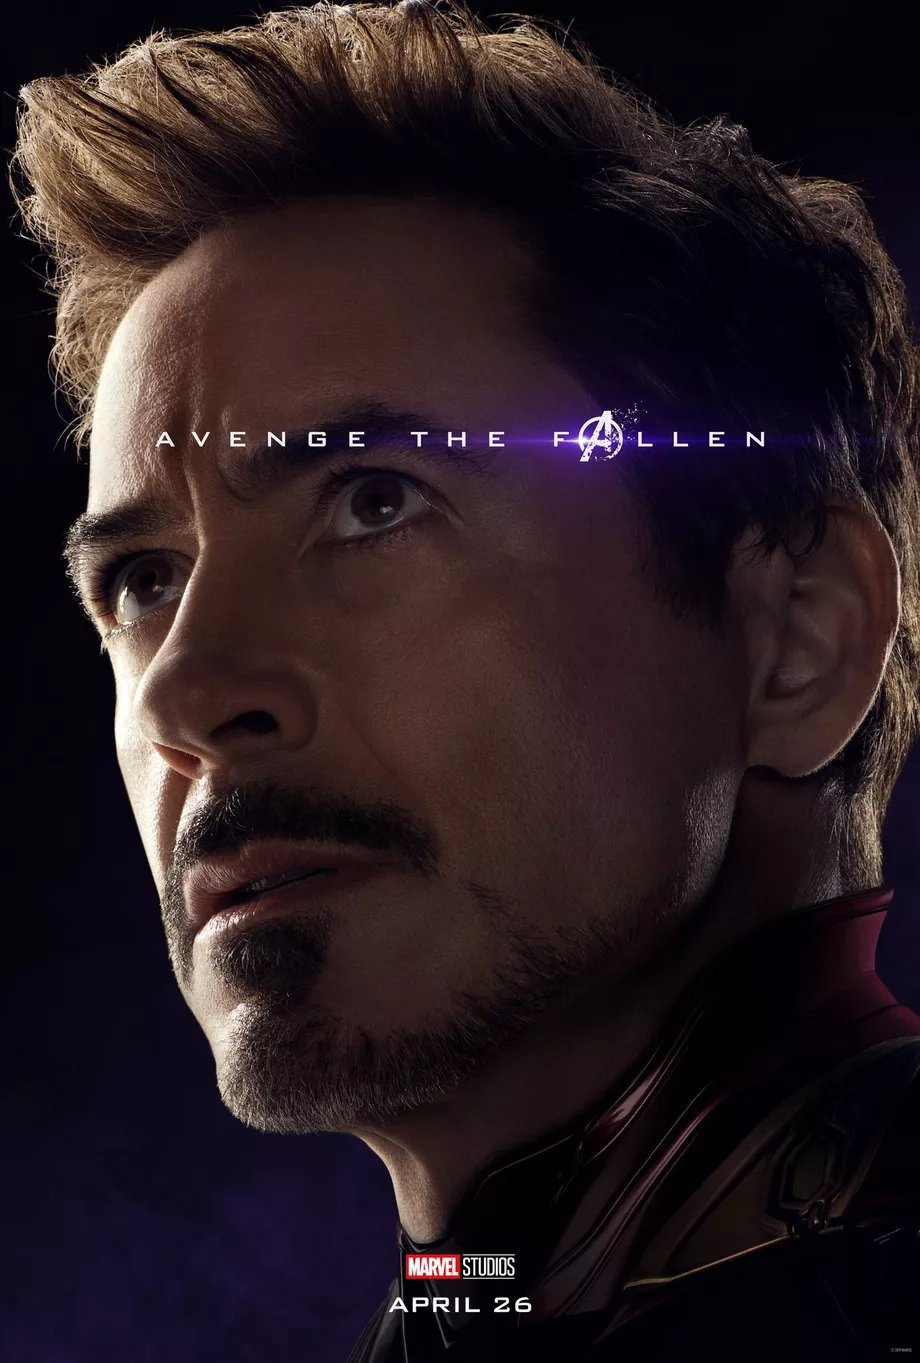 Marvel S Character Posters For Avengers Endgame Confirms Who Didn T